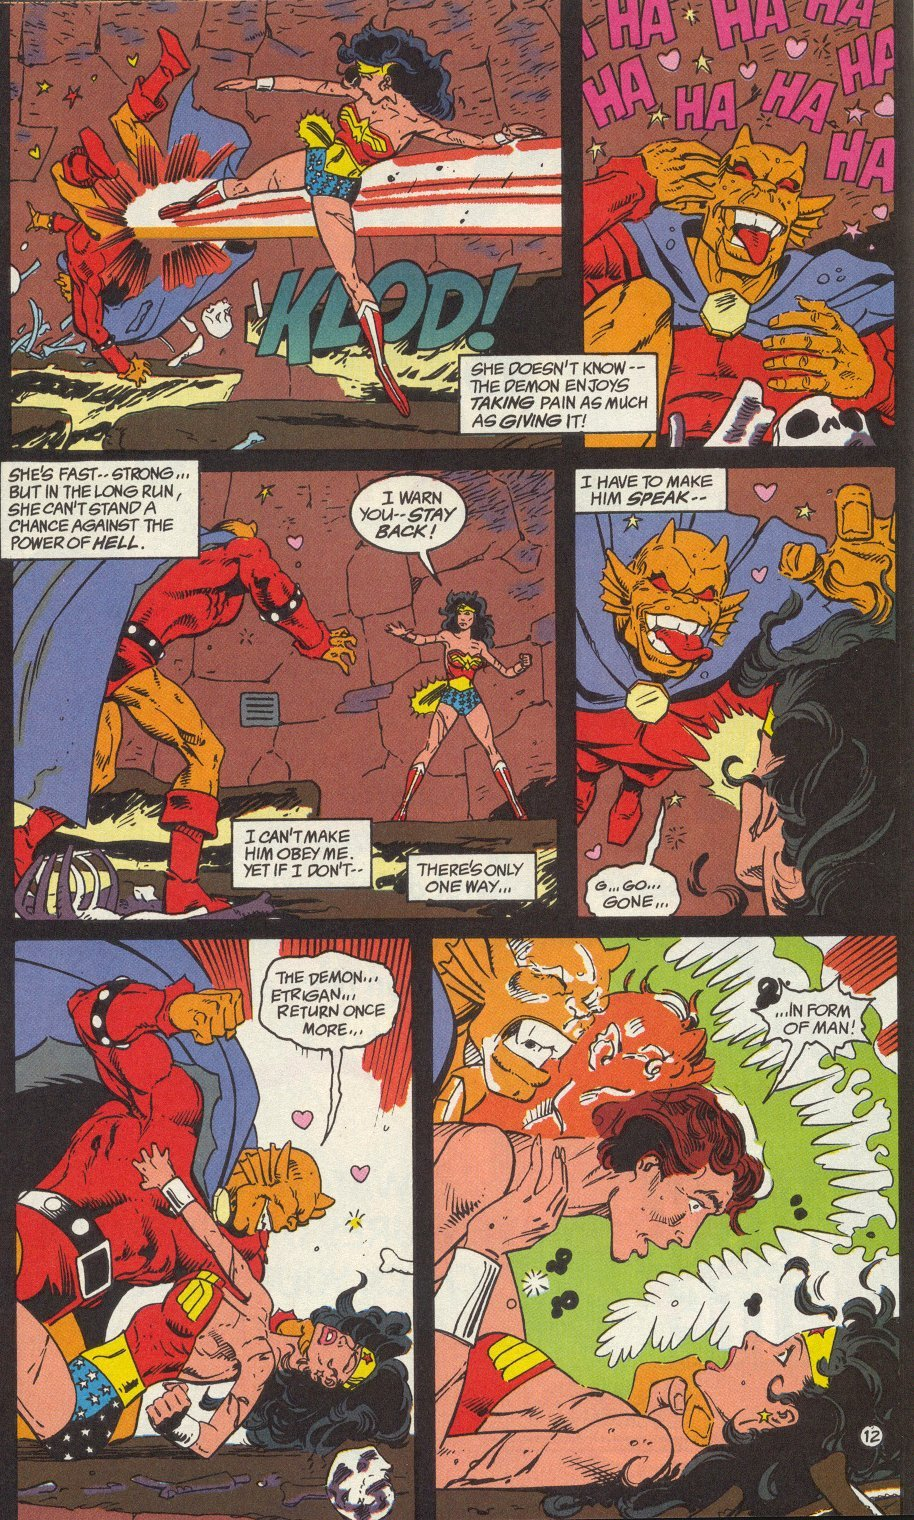 In this instance he isn't being himself and he gets into it with Wonder Woman who kicks him in the crotch and in the chest and Etrigan laughs and it seems to turn him on